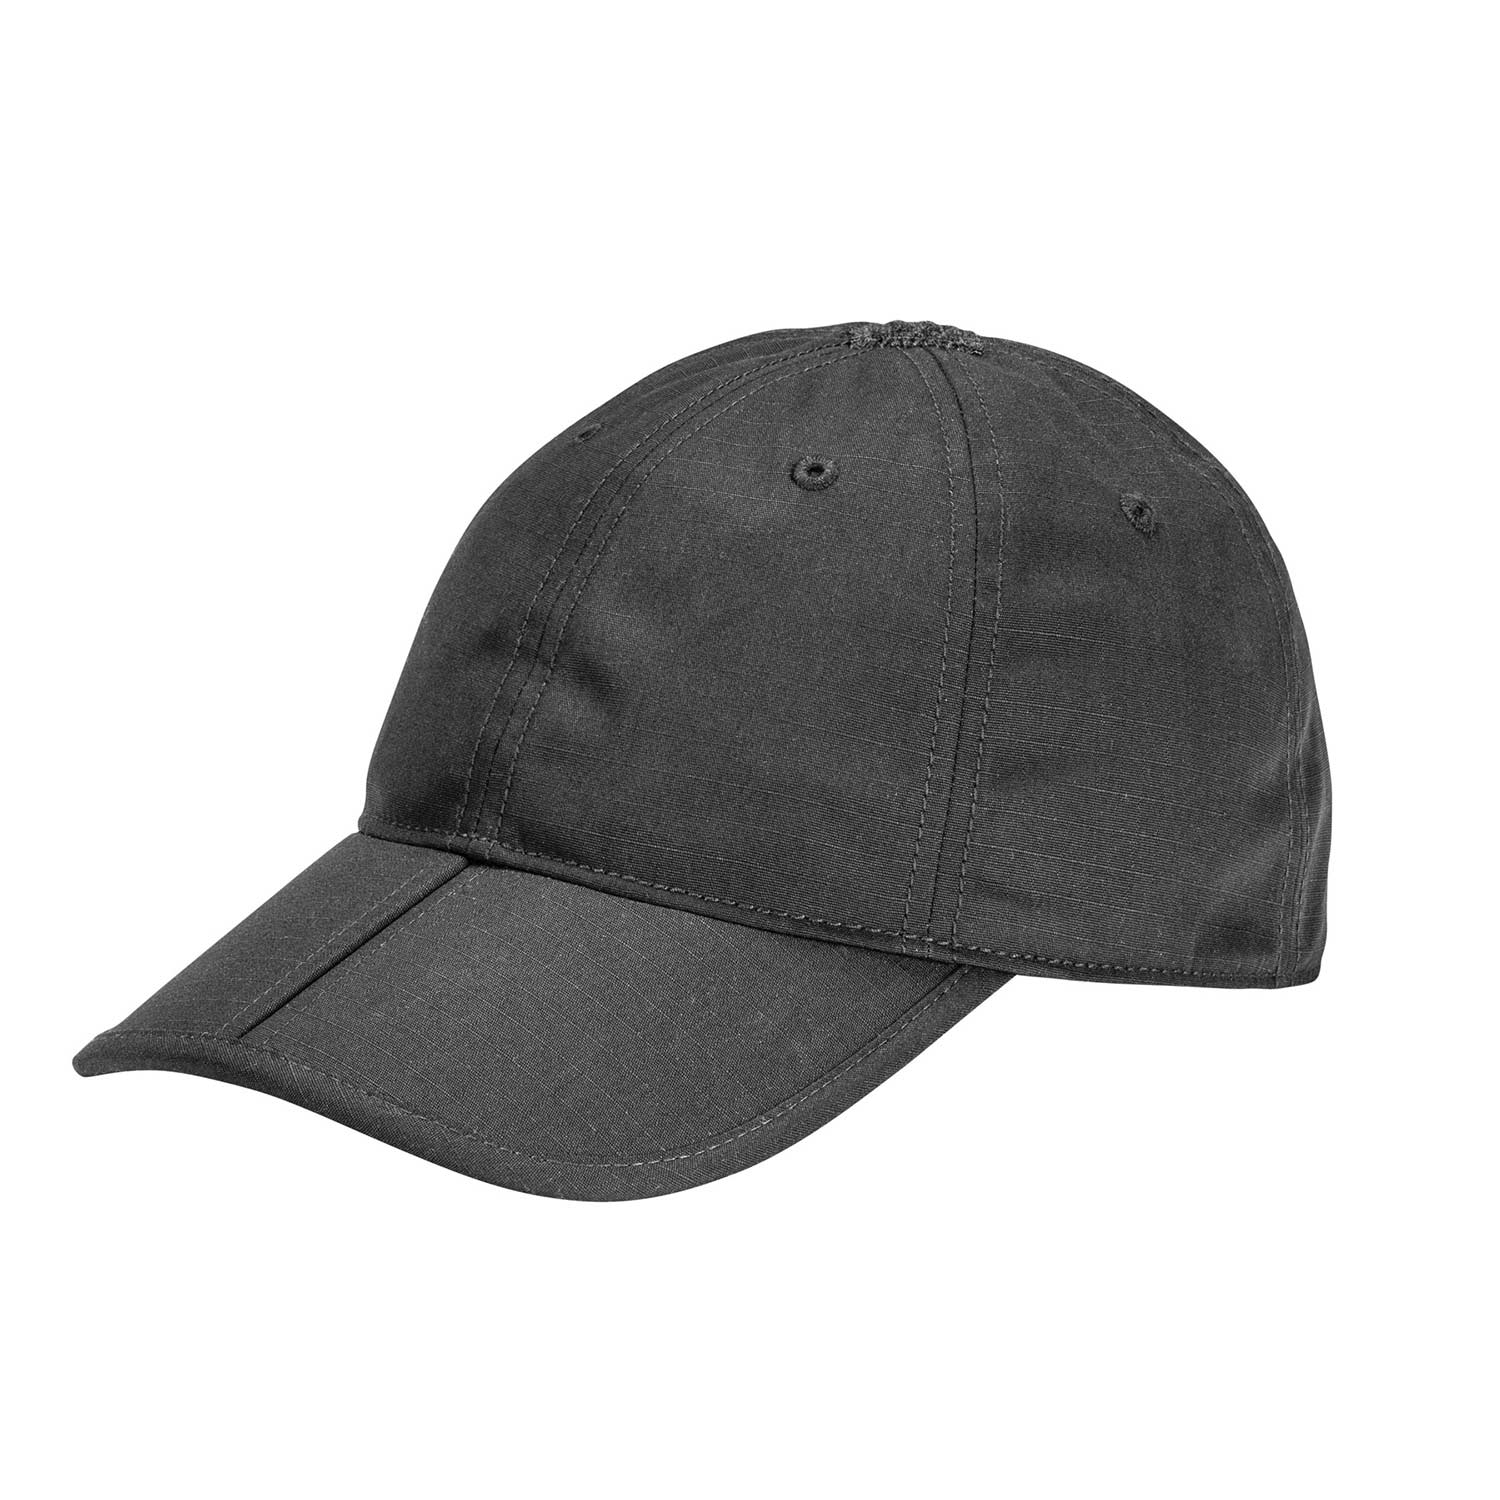 5.11 Tactical Foldable Uniform Hat